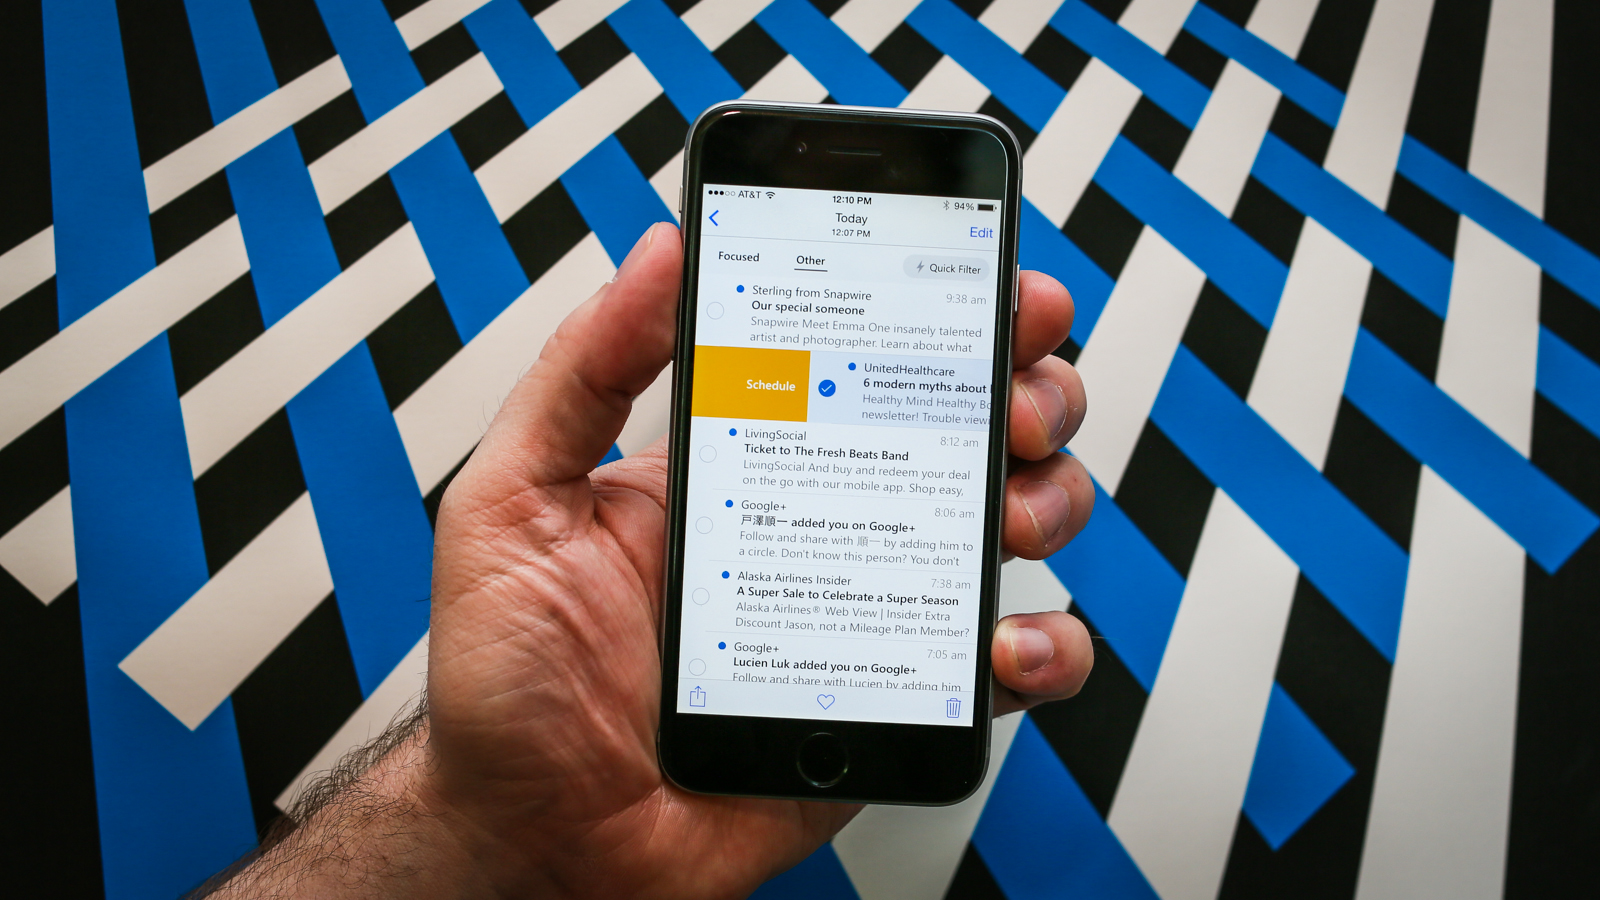 Microsoft Outlook on a smartphone screen